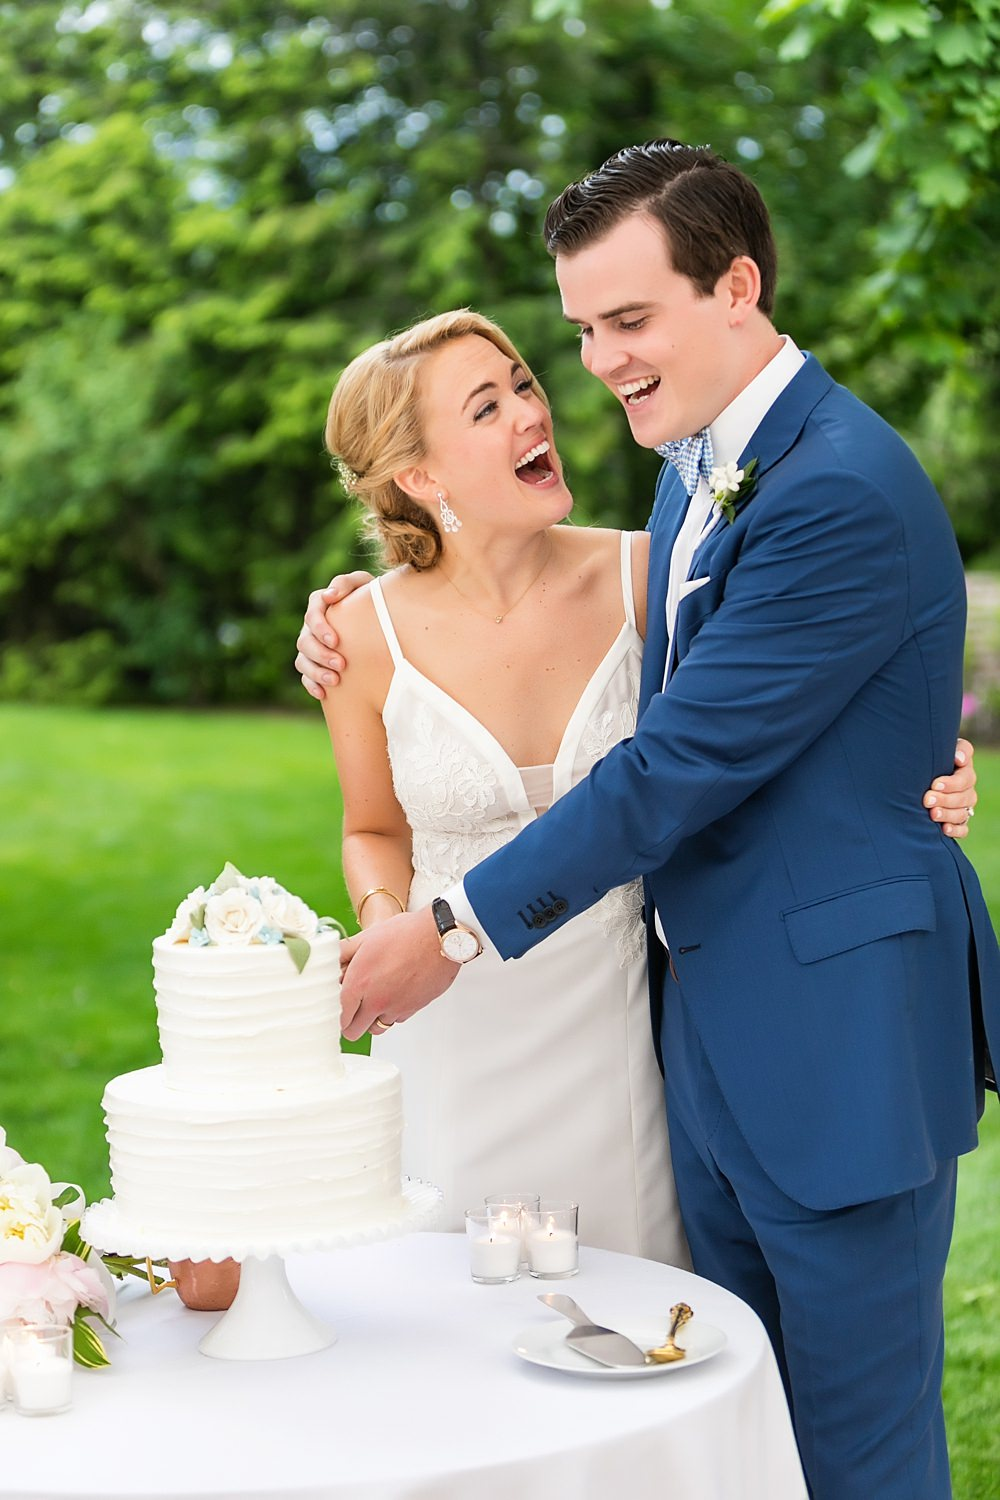 greenwich wedding : memorial day weekend wedding : jody ewen events : vue photography 0133